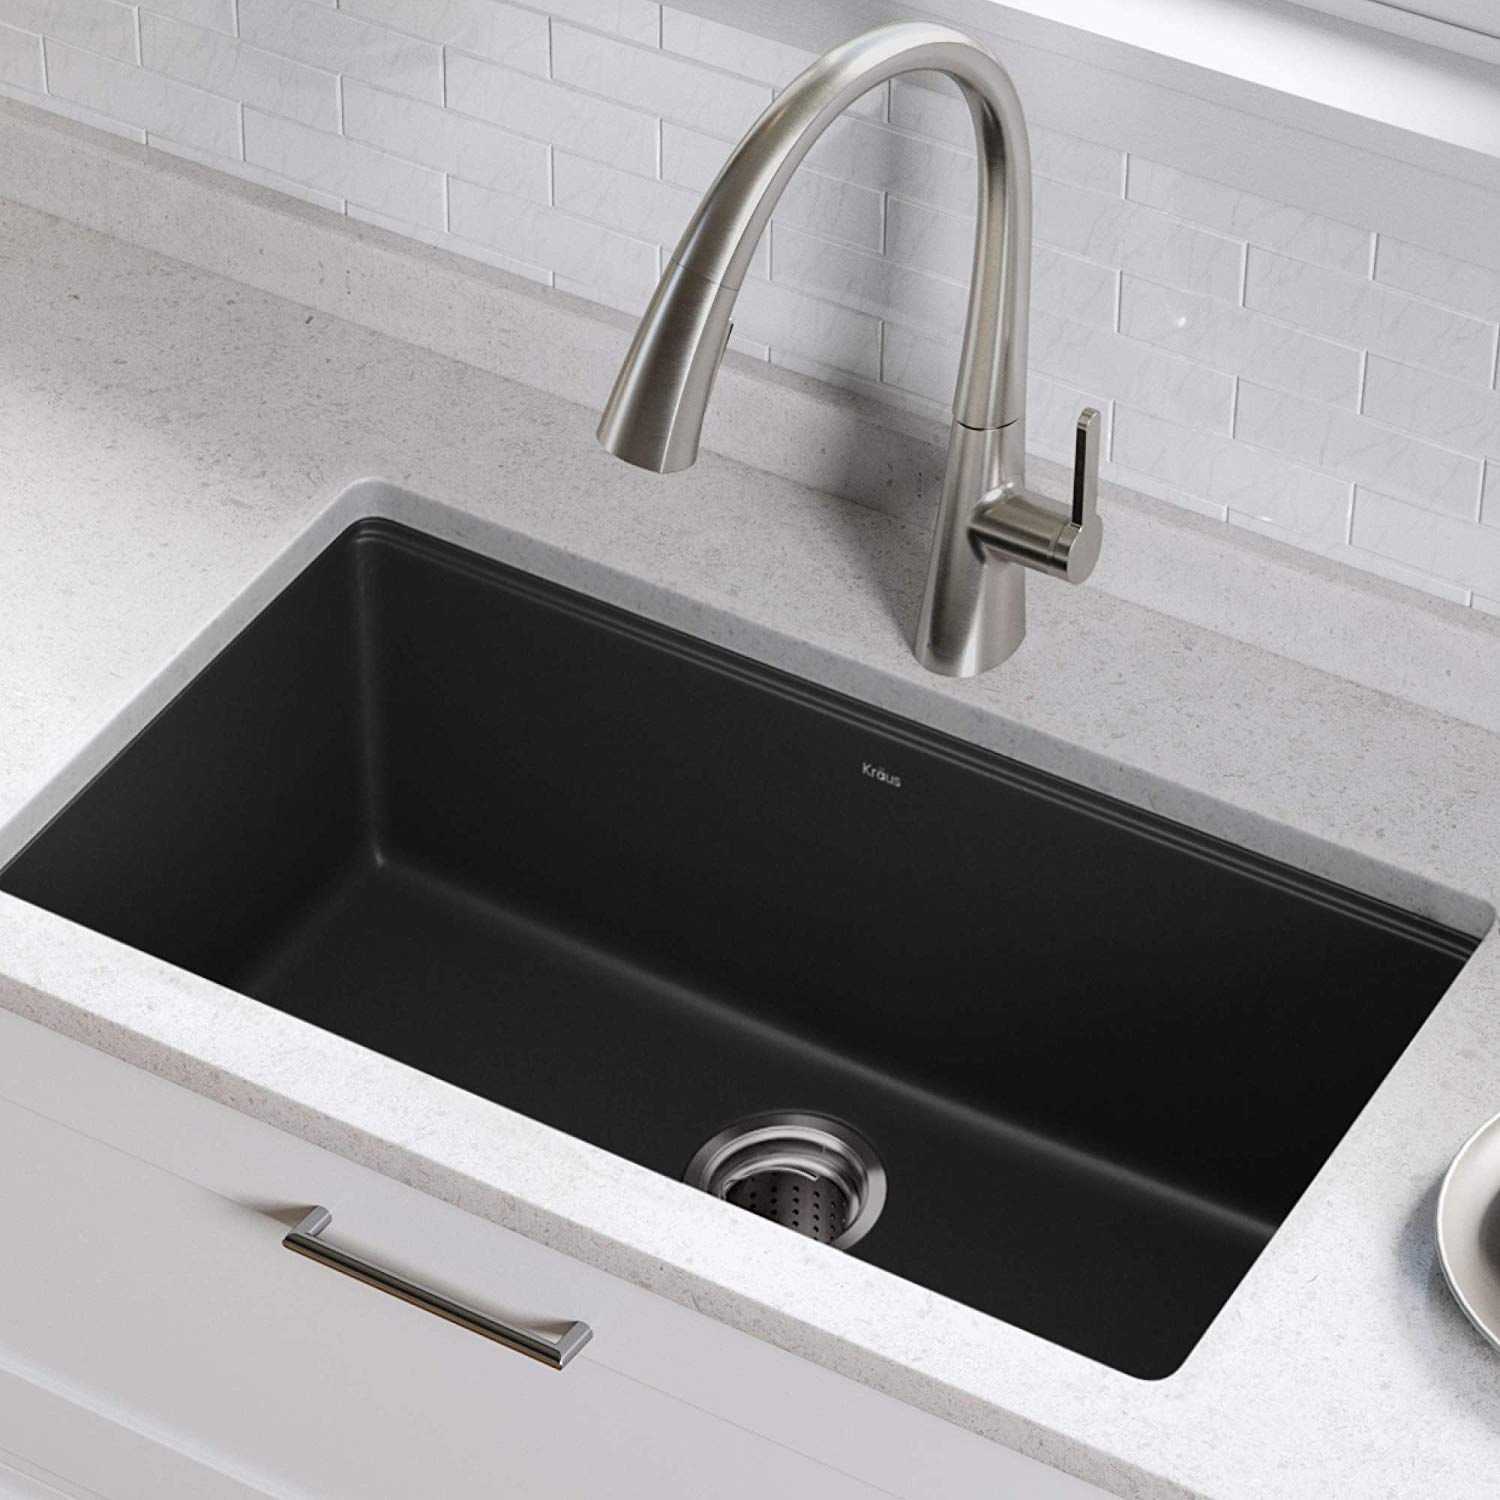 Undermount Single Bowl Black Onyx Granite Kitchen Sink Undermount Kitchensink Granitecompositeki Undermount Kitchen Sinks Granite Kitchen Sinks Sink